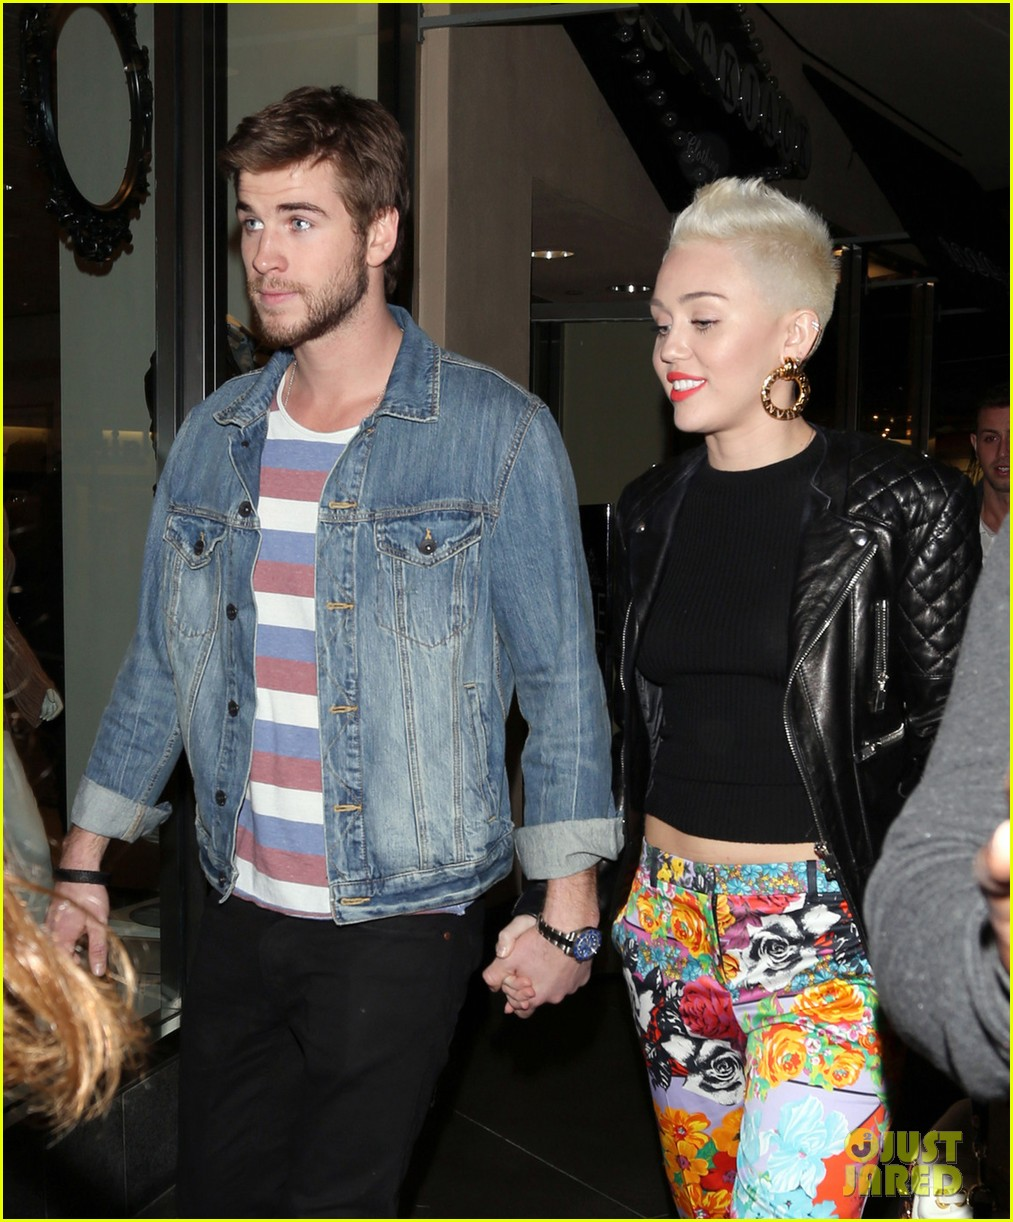 miley-cyrus-liam-hemsworth-noah-cyrus-birthday-bash-07.jpg